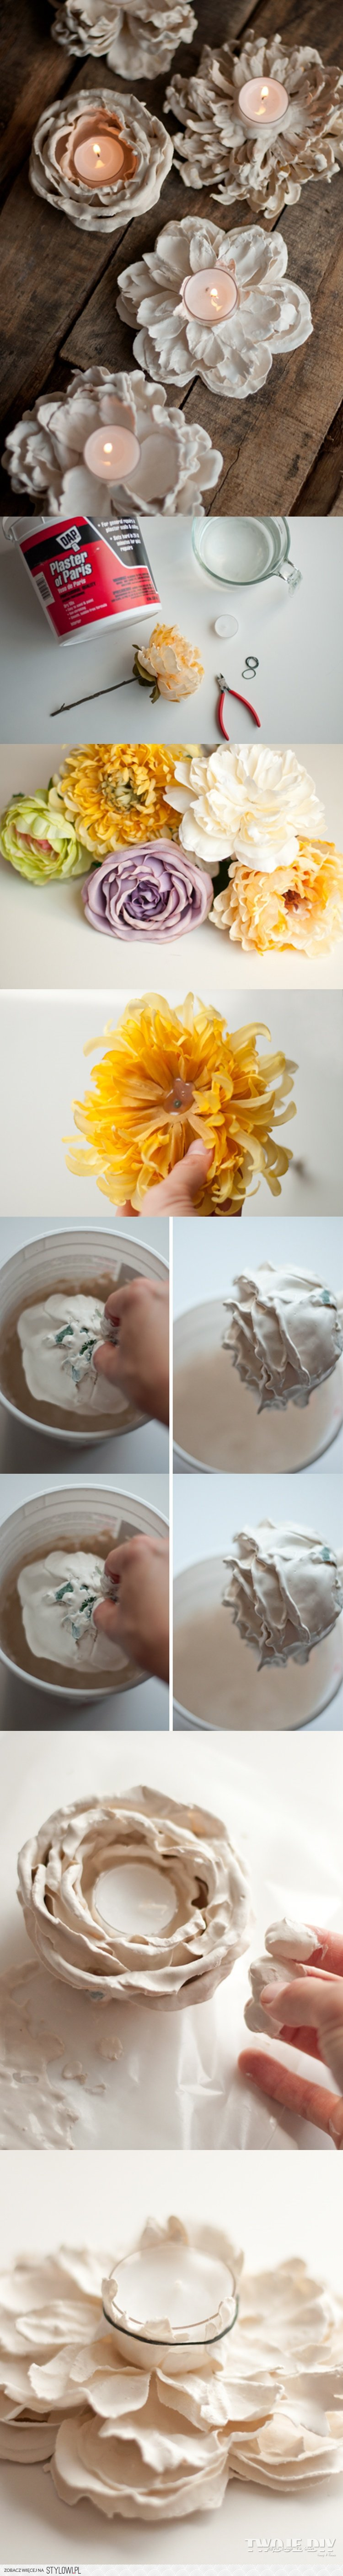 9 DIY Romantic Plaster Dipped Flower Votives